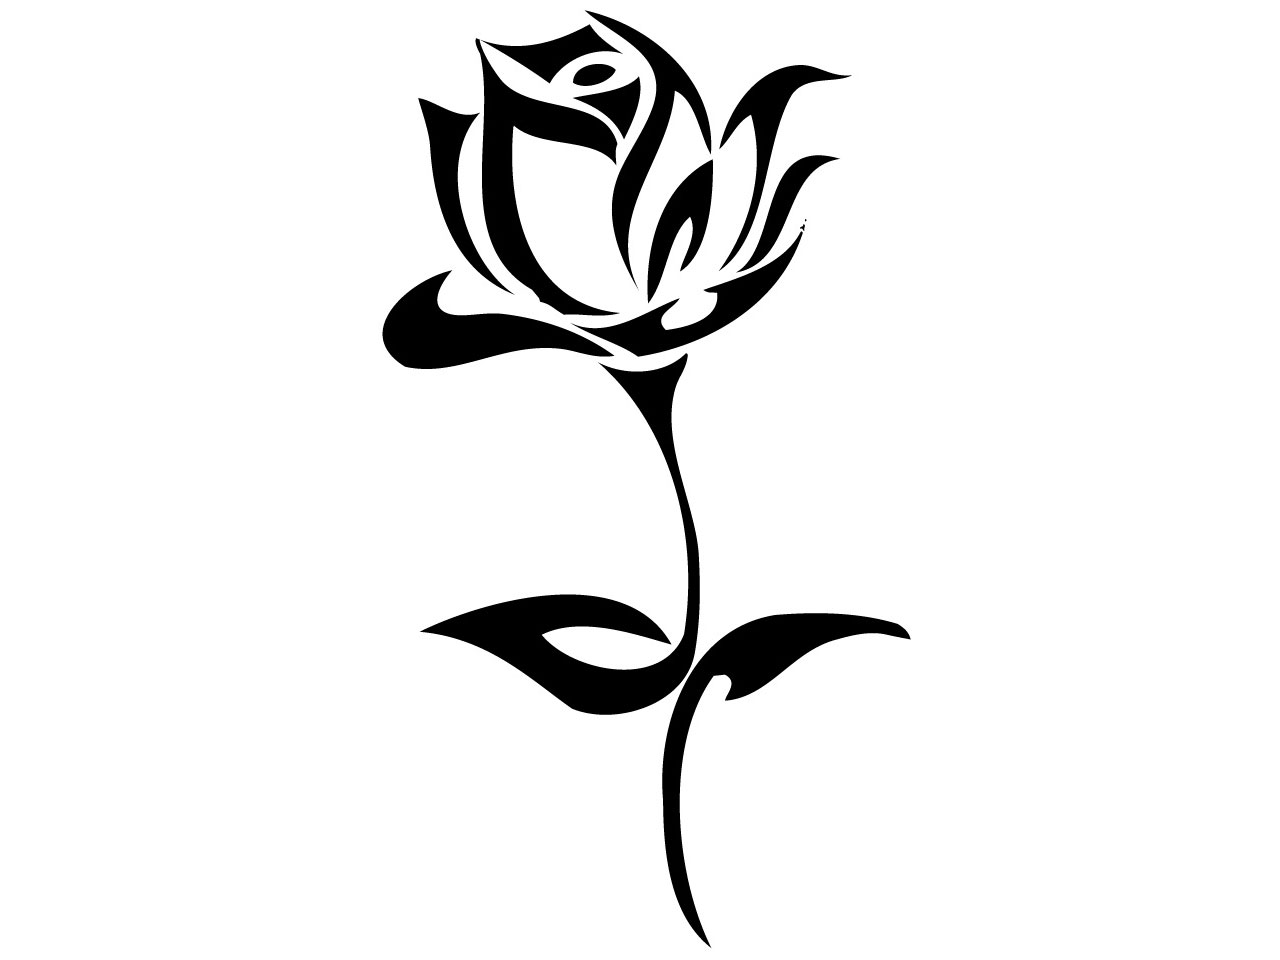 Tattoo flower clipart hd wallpaper graphic royalty free download Heart Tattoo Designs Clipart | Free download best Heart ... graphic royalty free download